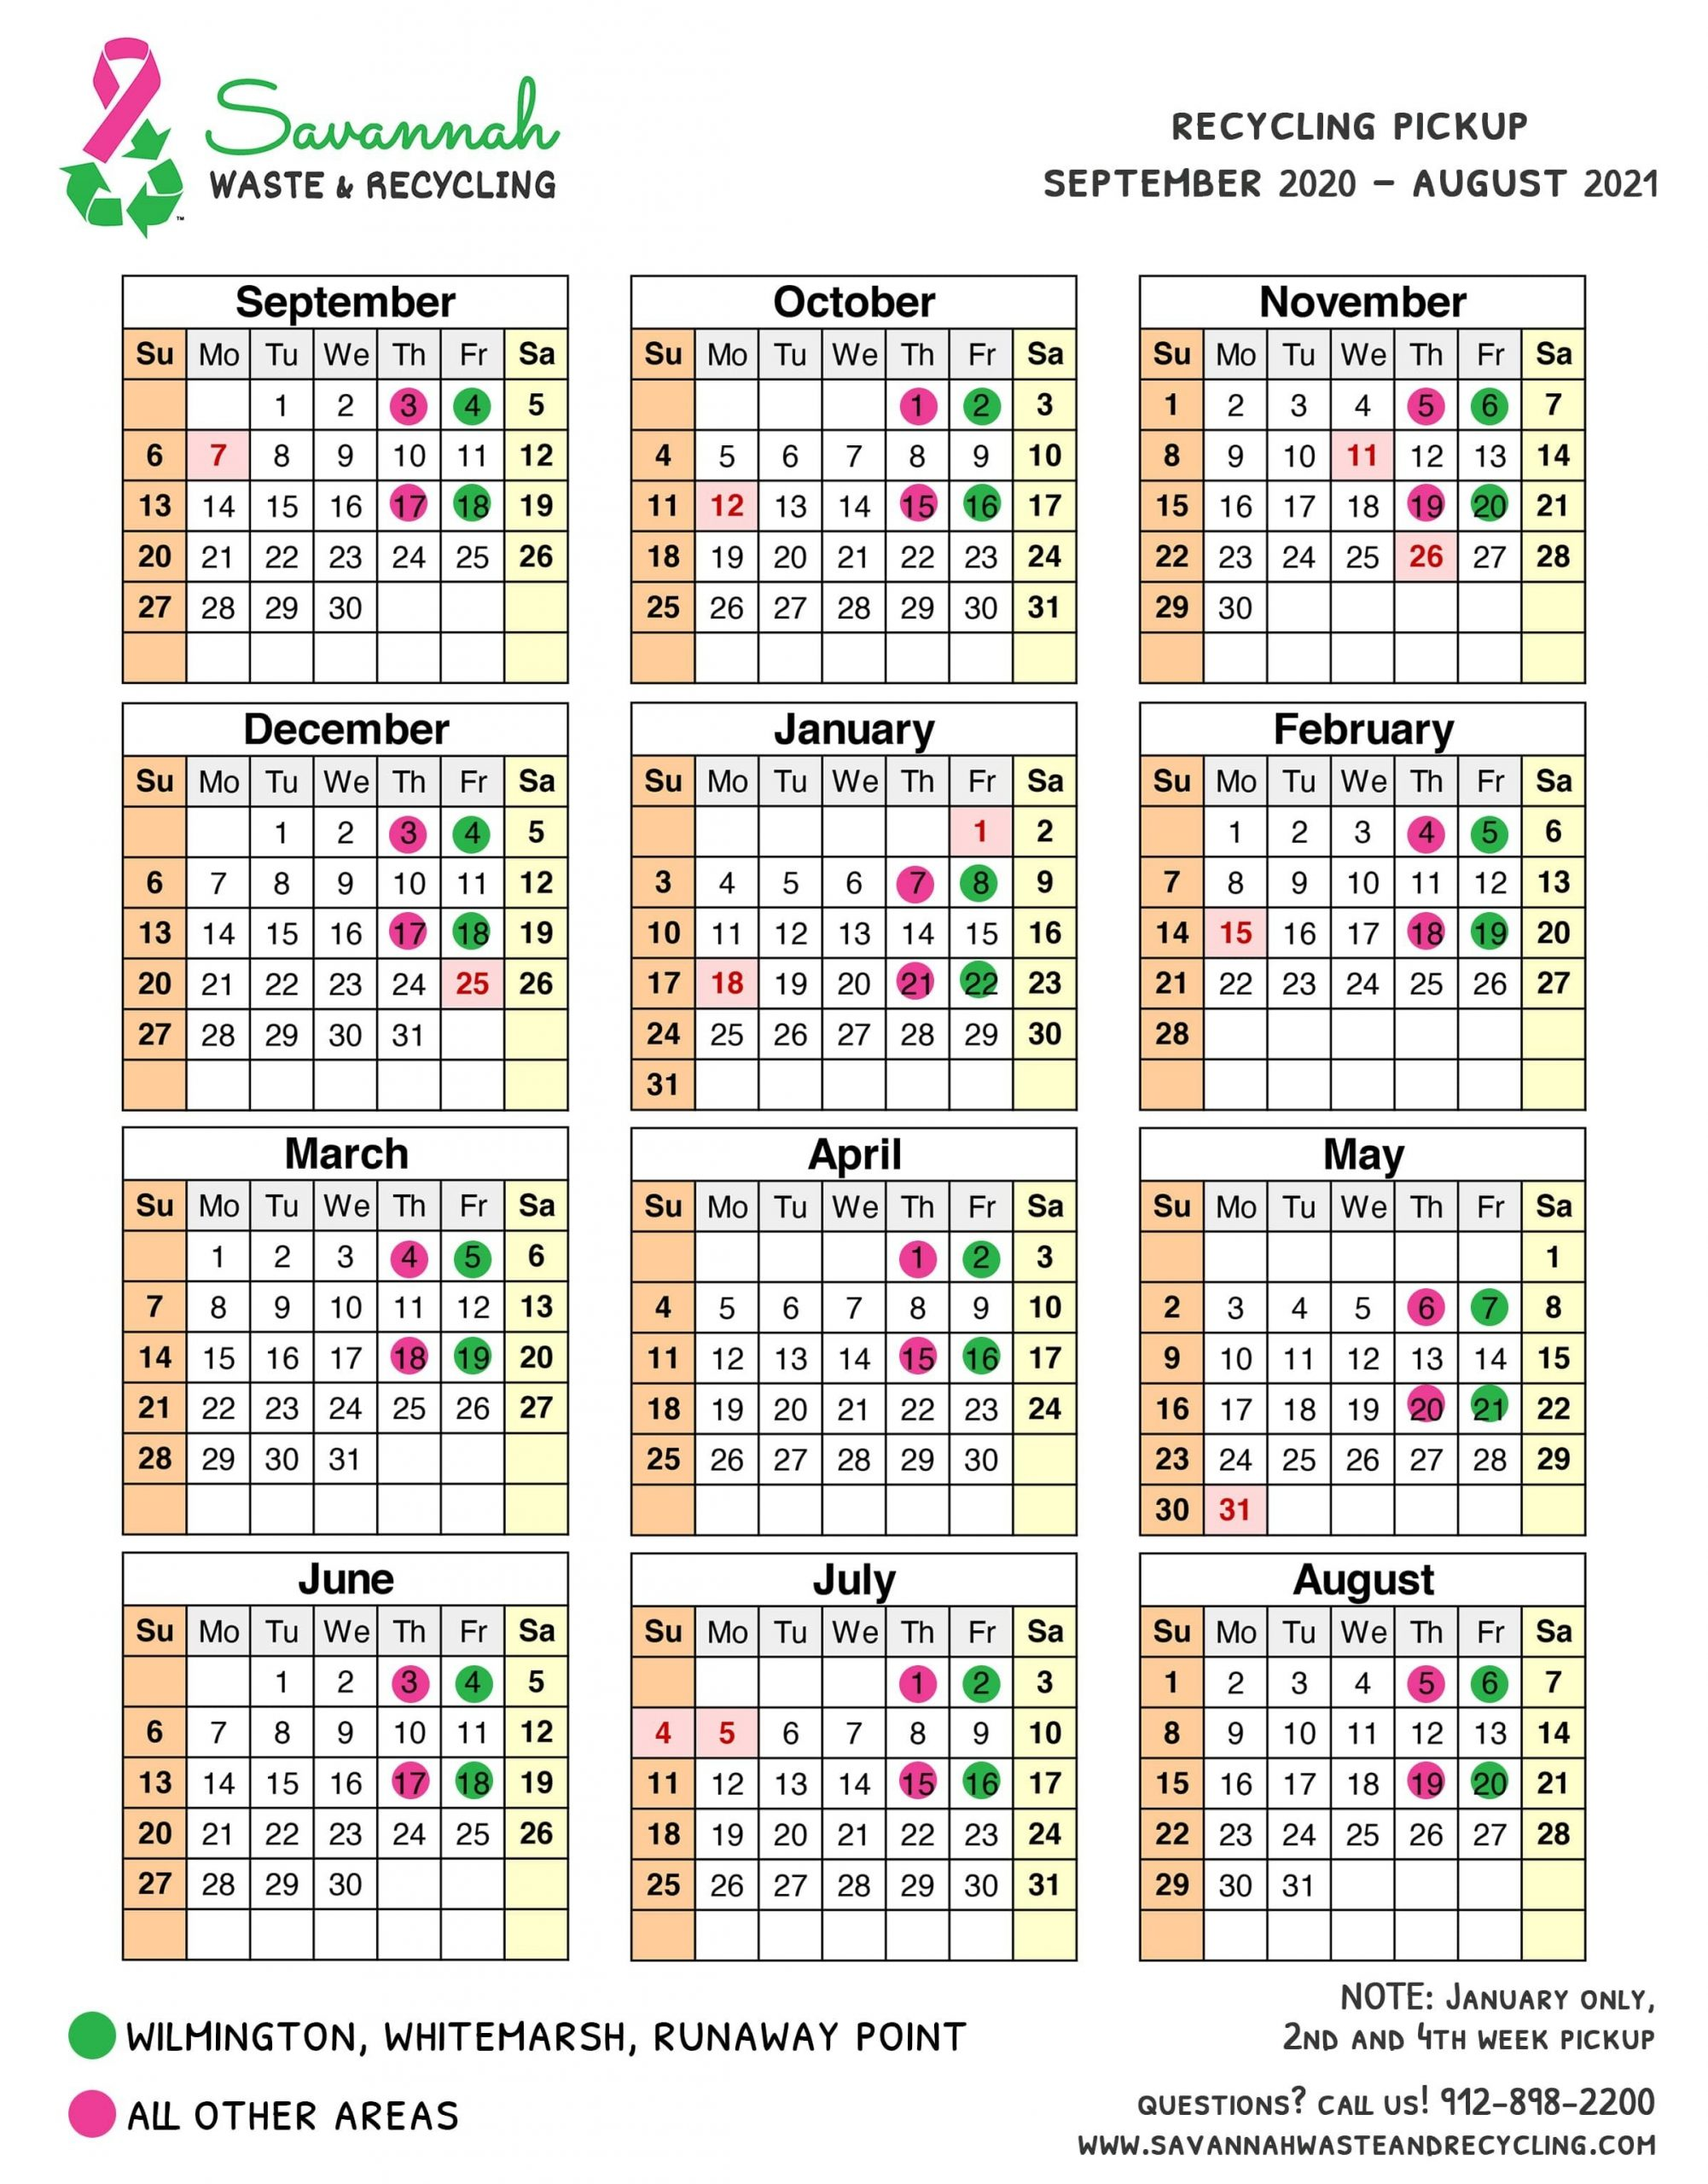 Recycling Calendar | Savannah Waste & Recycling